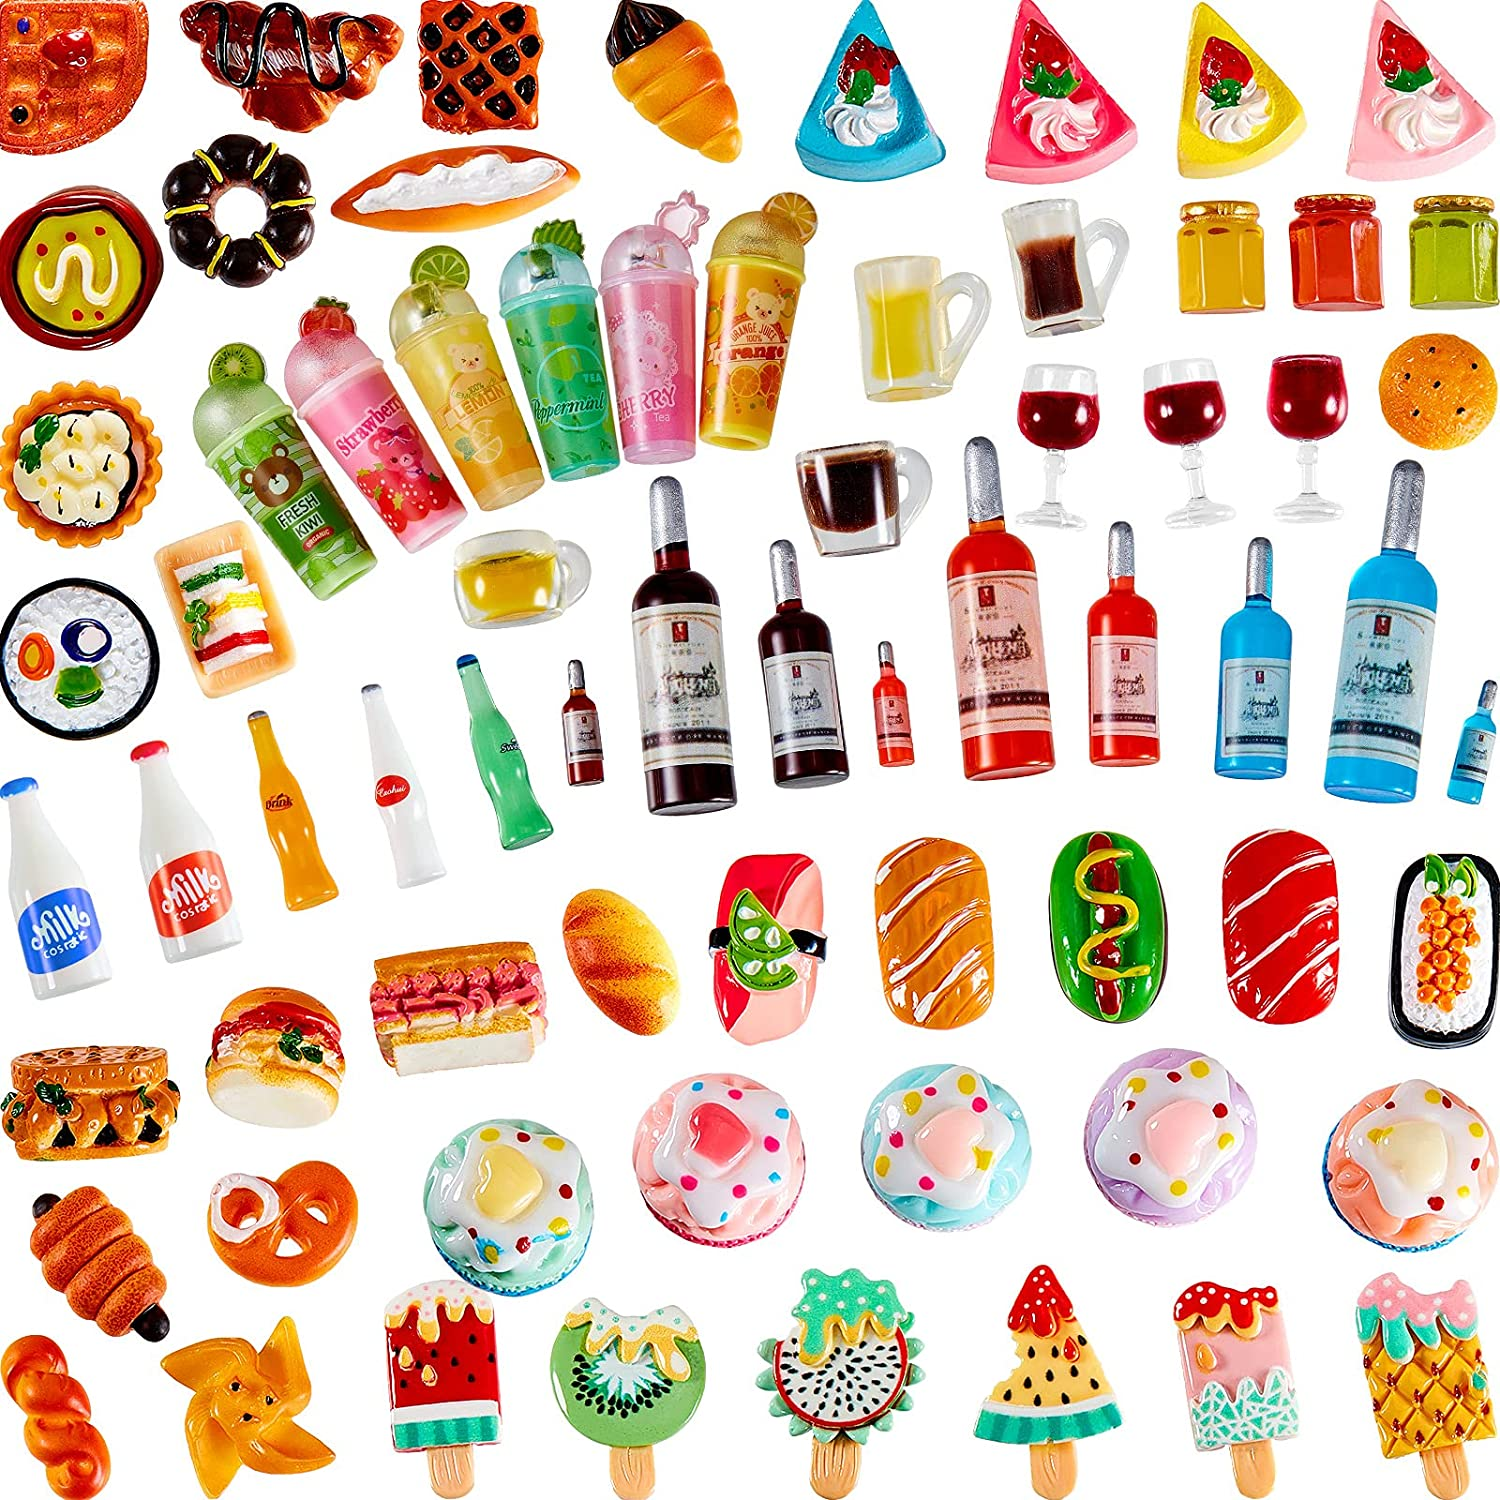 Sumind 81 Pieces Miniature Food Drinks Toys Mixed Pretend Foods for Dollhouse Kitchen Play Resin Mini Food for Adults Teenagers Doll House Game Party Toys